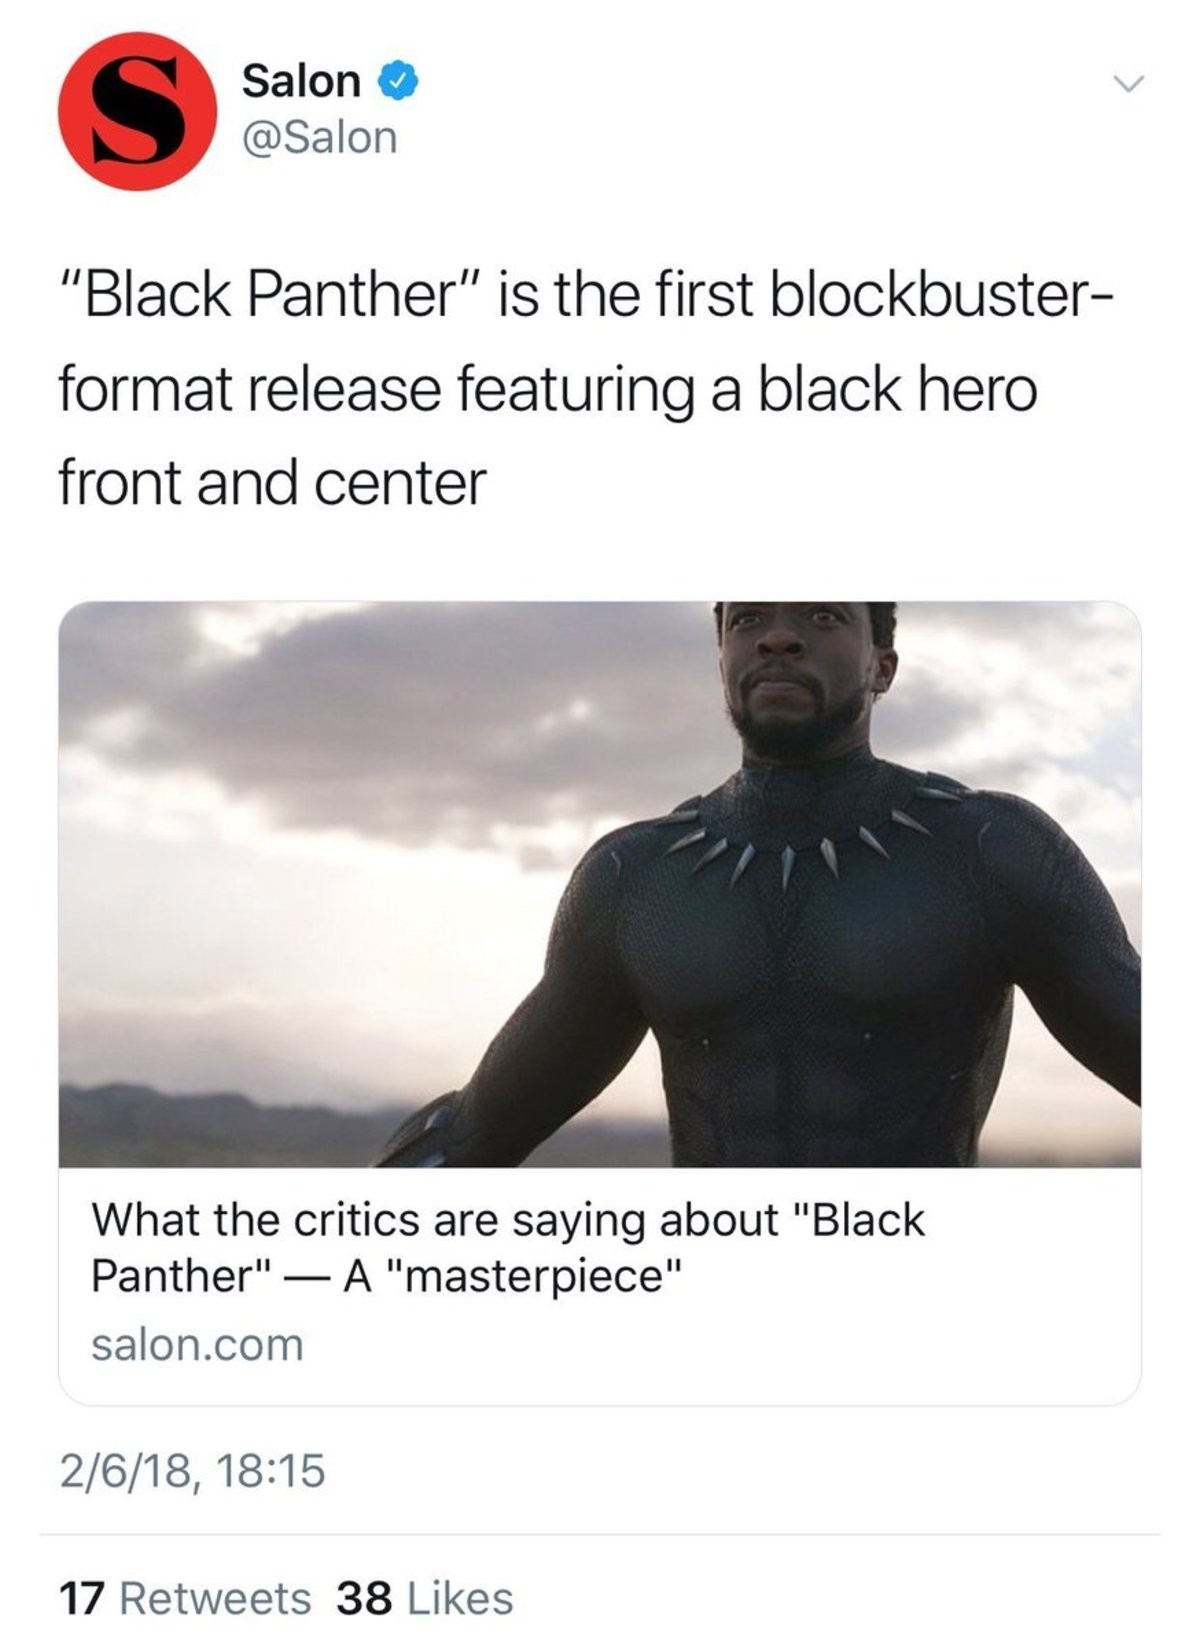 "Kicking down open doors. join list: PoliticsAndStuff (745 subs)Mention History. Salon 9 Notta'' Black Panther"" is the first blockbuster- format release featurin"